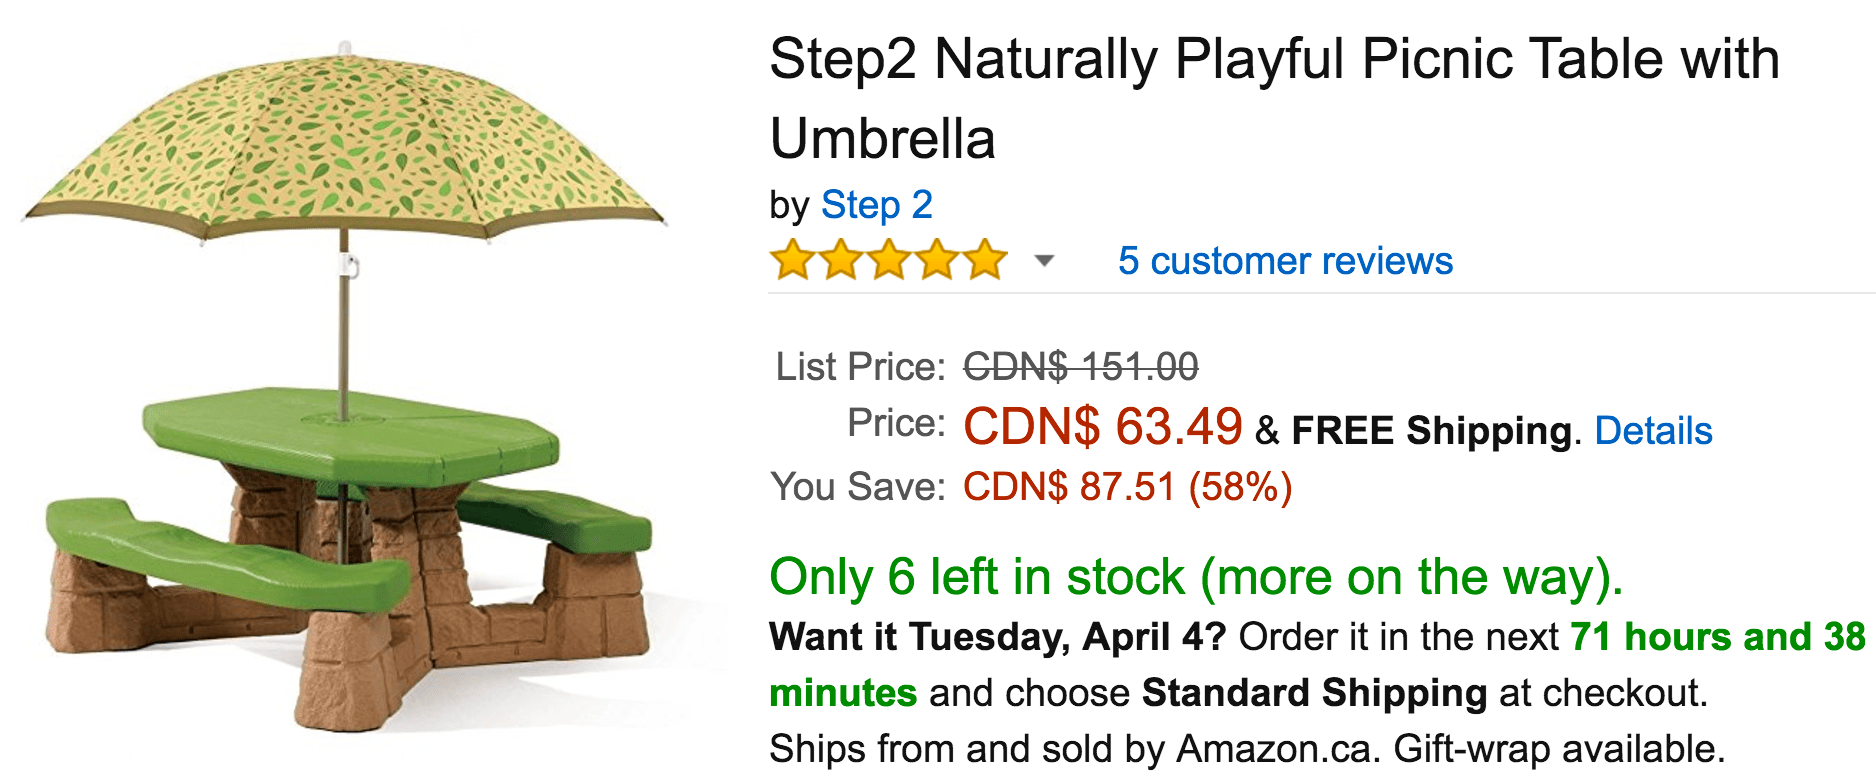 step2 table and chairs with umbrella best high chair for baby amazon canada deals save 58 on naturally playful